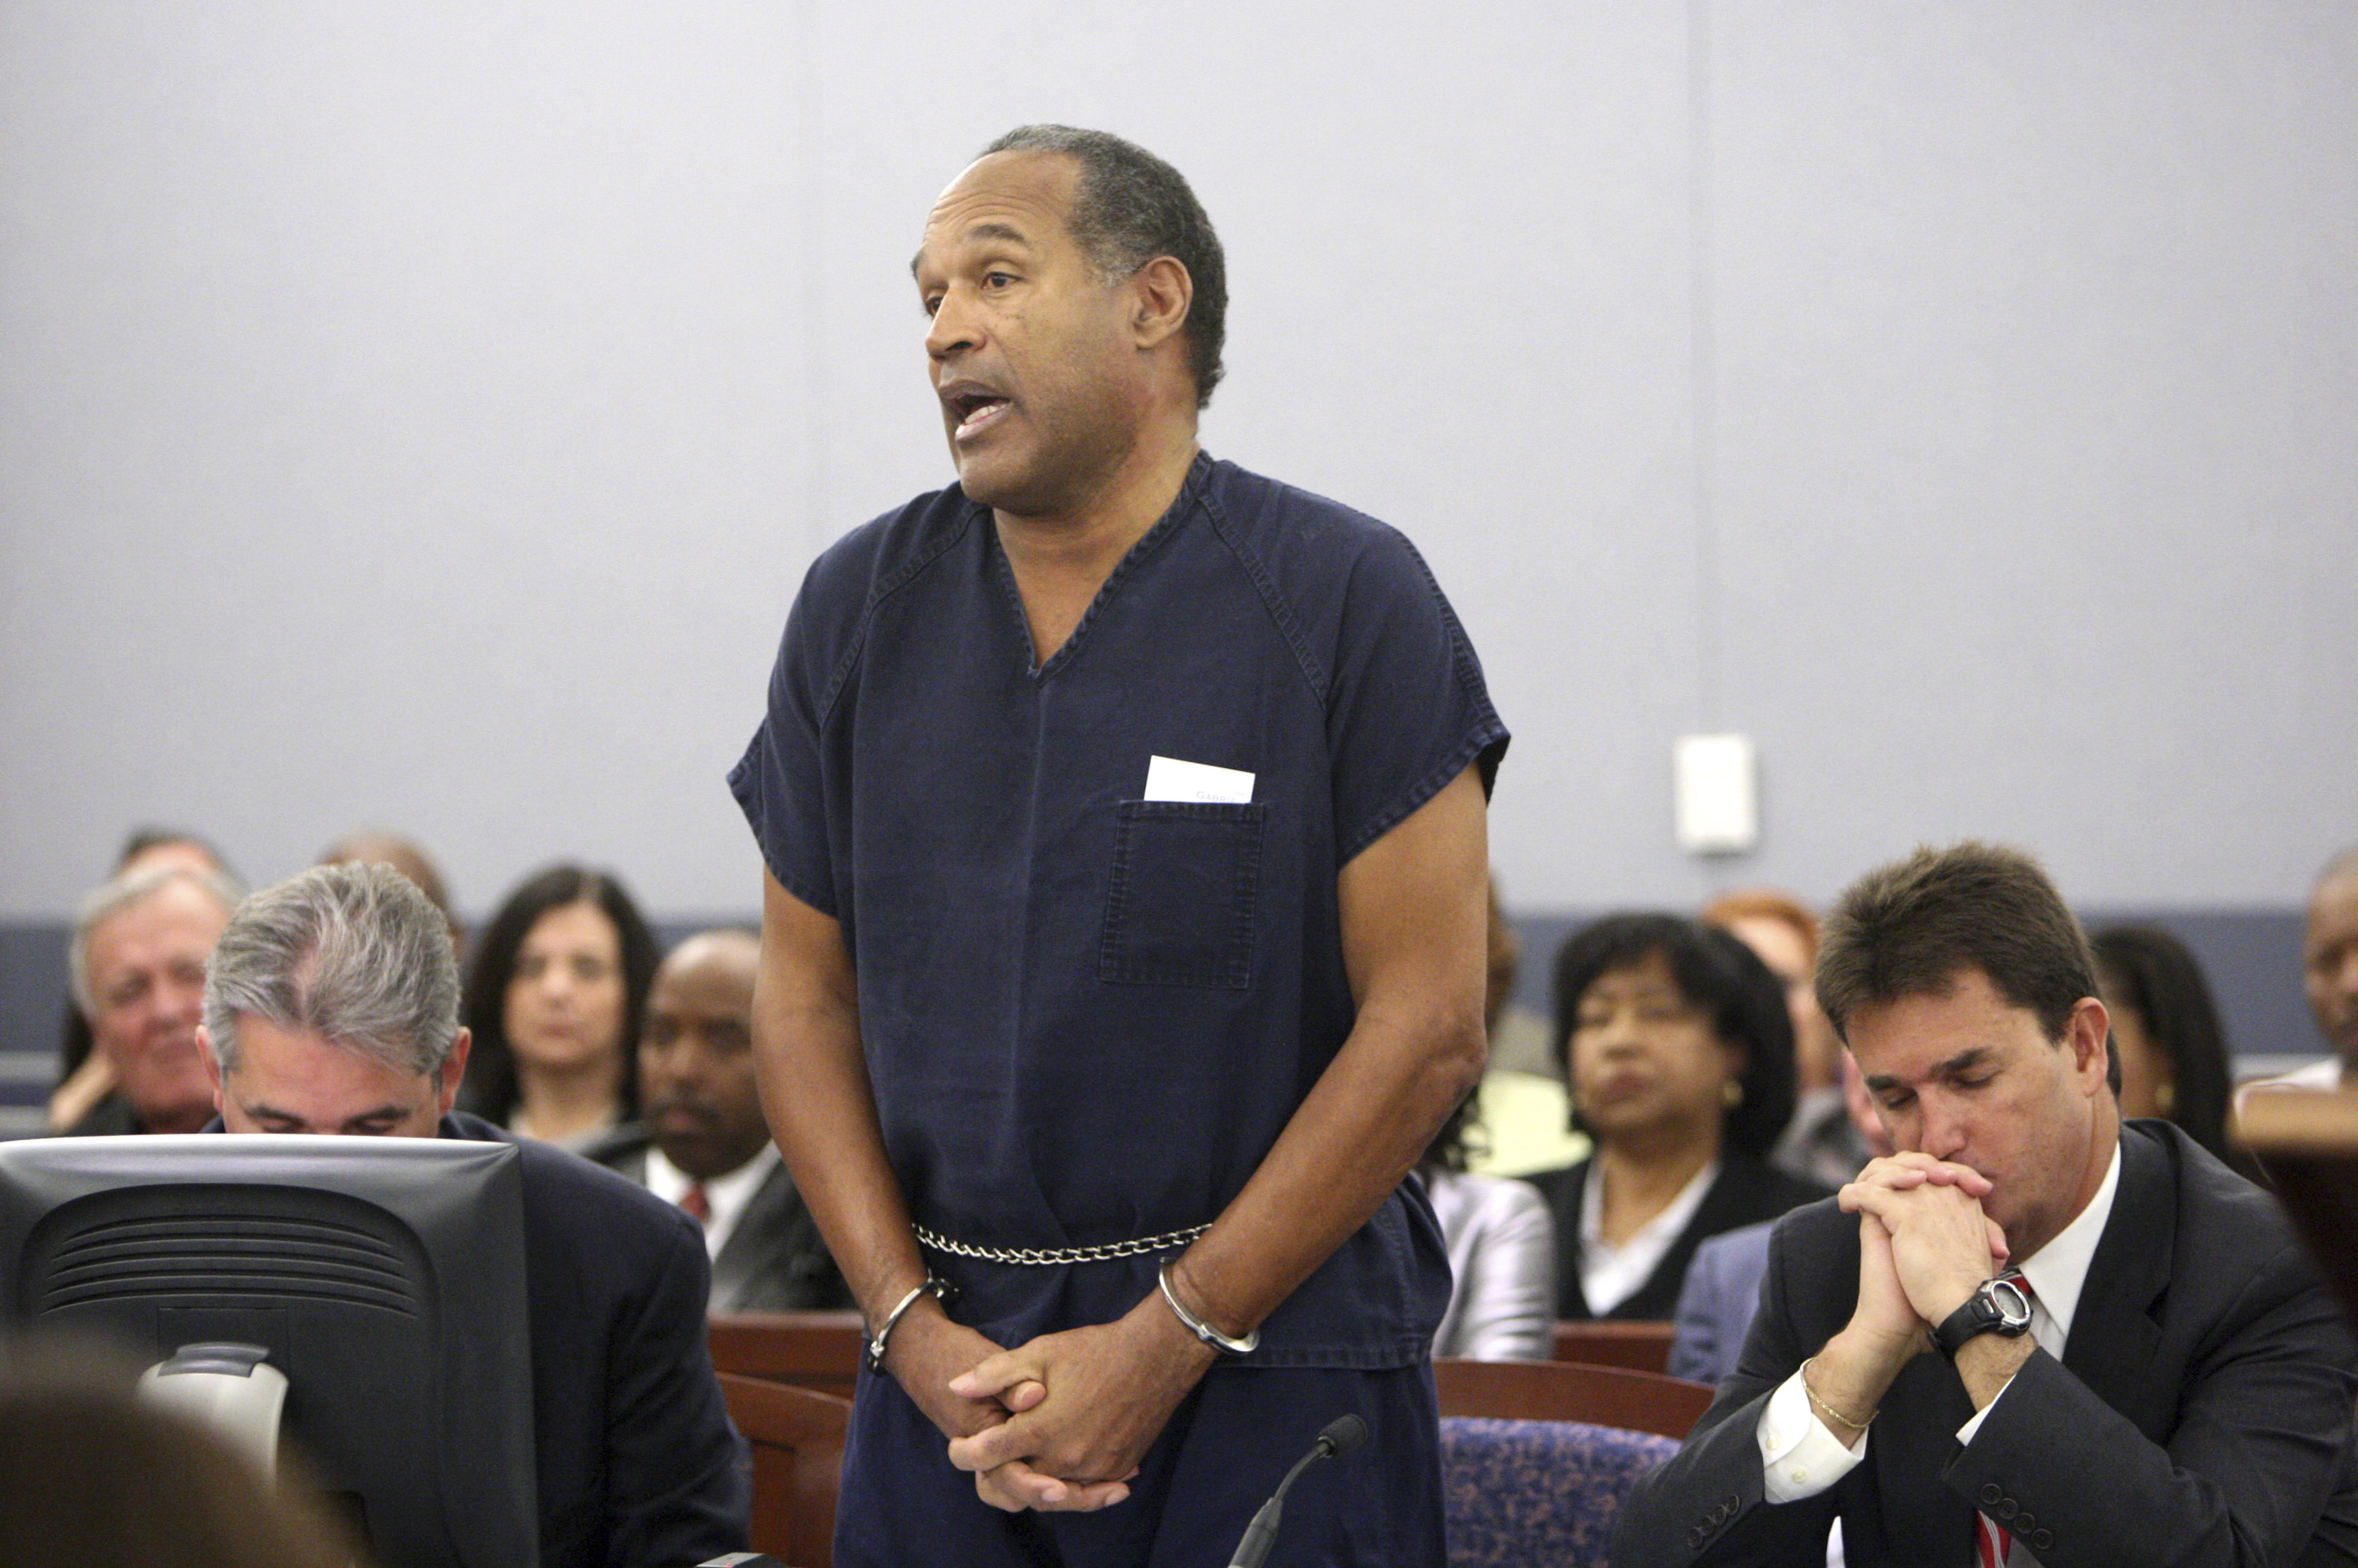 "FILE - In this Dec. 5, 2008, file photo, O.J. Simpson speaks during his sentencing hearing at the Clark County Regional Justice Center in Las Vegas. Sitting right to Simpson is his lawyer Yale Galanter. Simpson was sentenced Friday to at least 15 years in prison for a hotel armed robbery after a judge rejected his apology and said, ""It was much more than stupidity."" A Nevada prison official said early Sunday, Oct. 1, 2017, O.J. Simpson, the former football legend and Hollywood star, has been released from a Nevada prison in Lovelock after serving nine years for armed robbery.  (AP Photo/Isaac Brekken, Pool, File)"